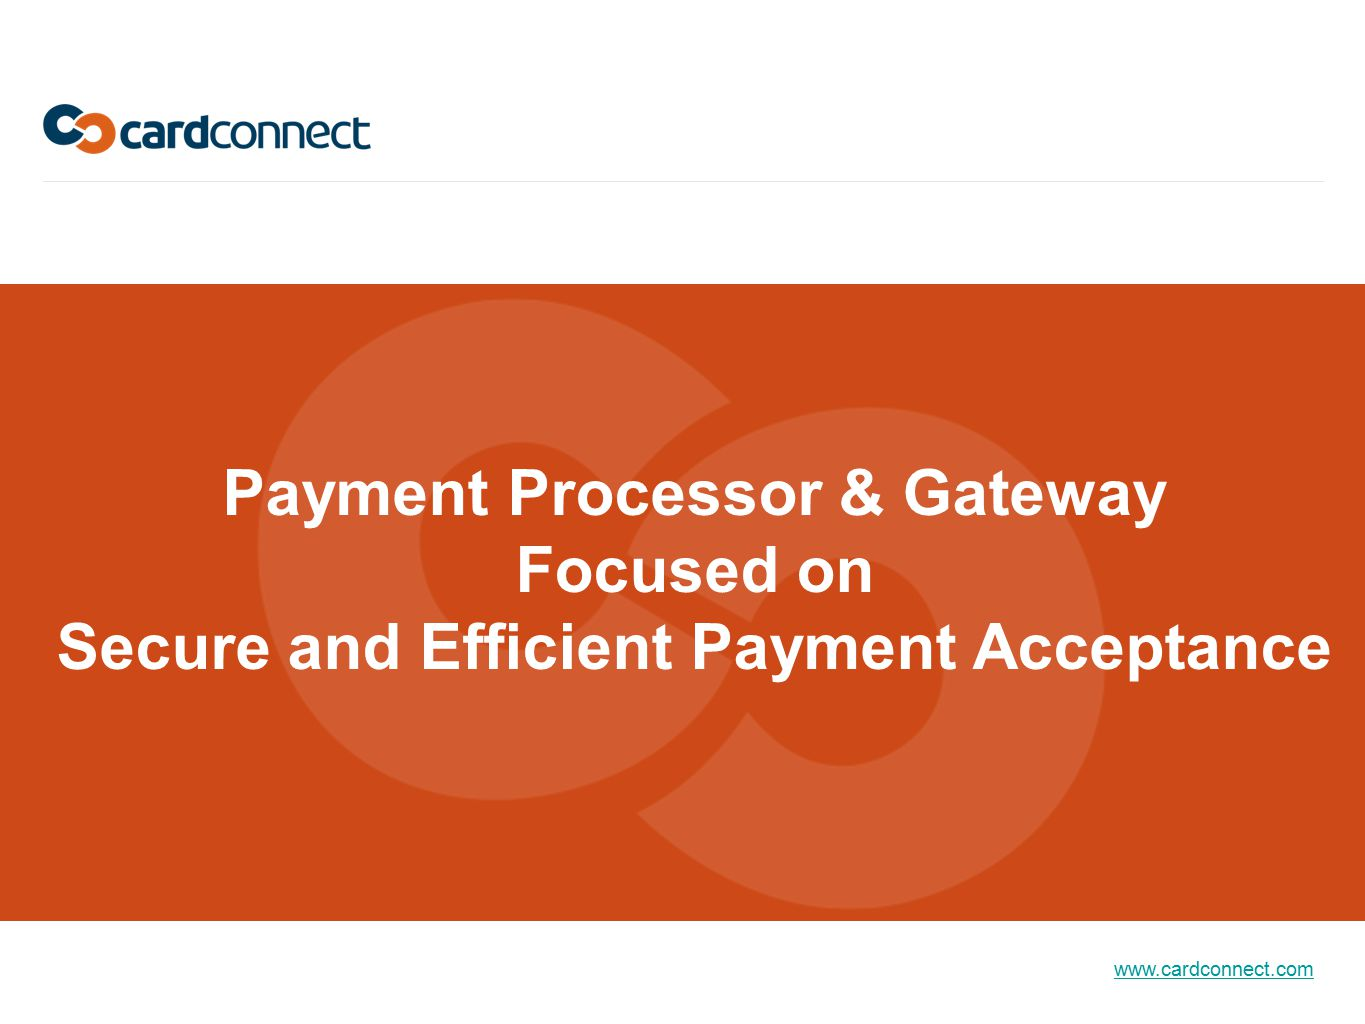 www.cardconnect.com Payment Processor & Gateway Focused on Secure and Efficient Payment Acceptance